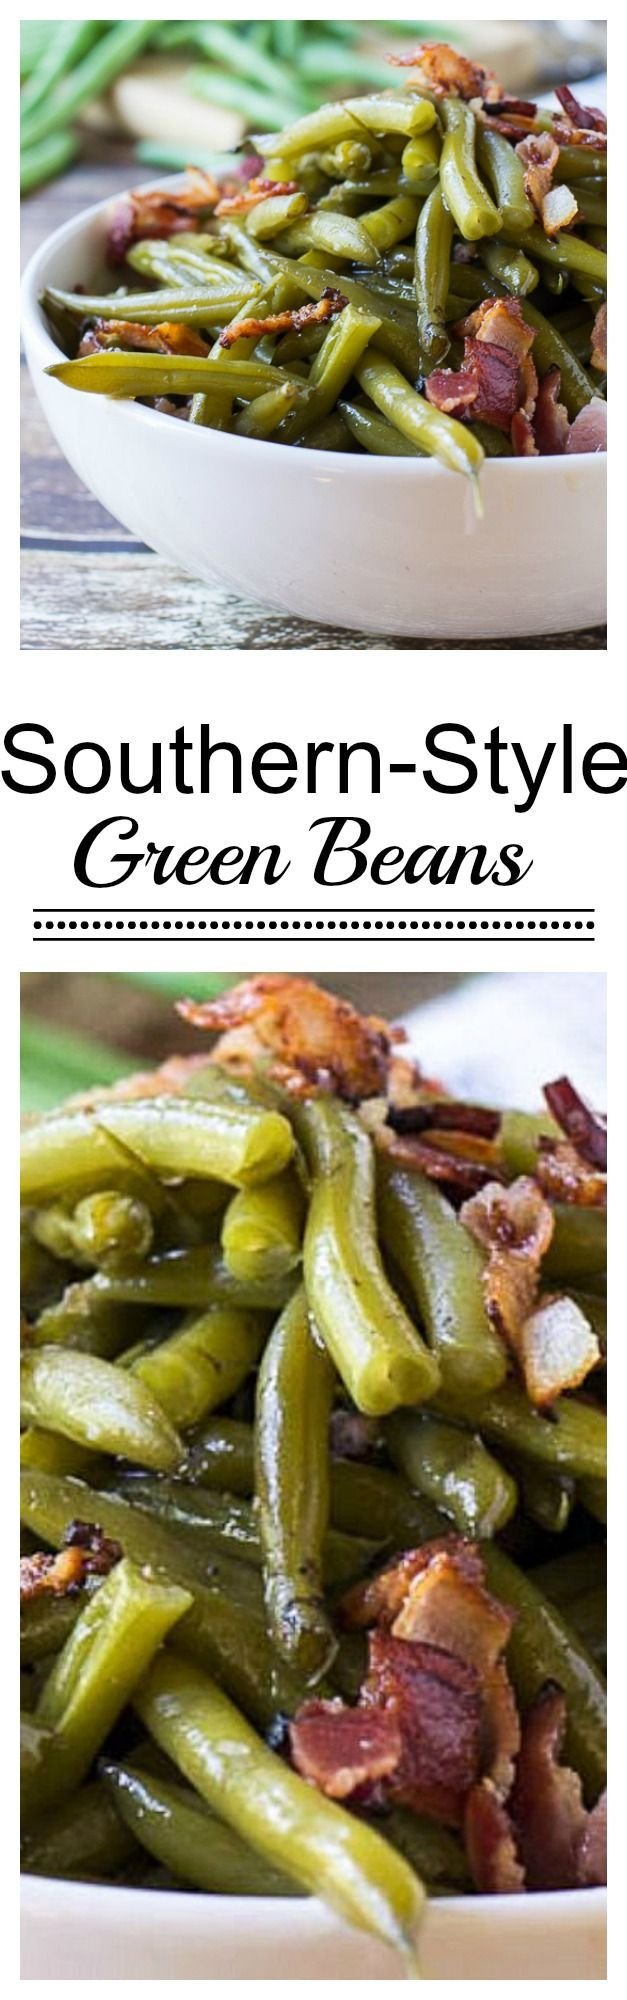 Southern-Style Green Beans with Bacon - cooked long and slow until melt-in-your-mouth tender!